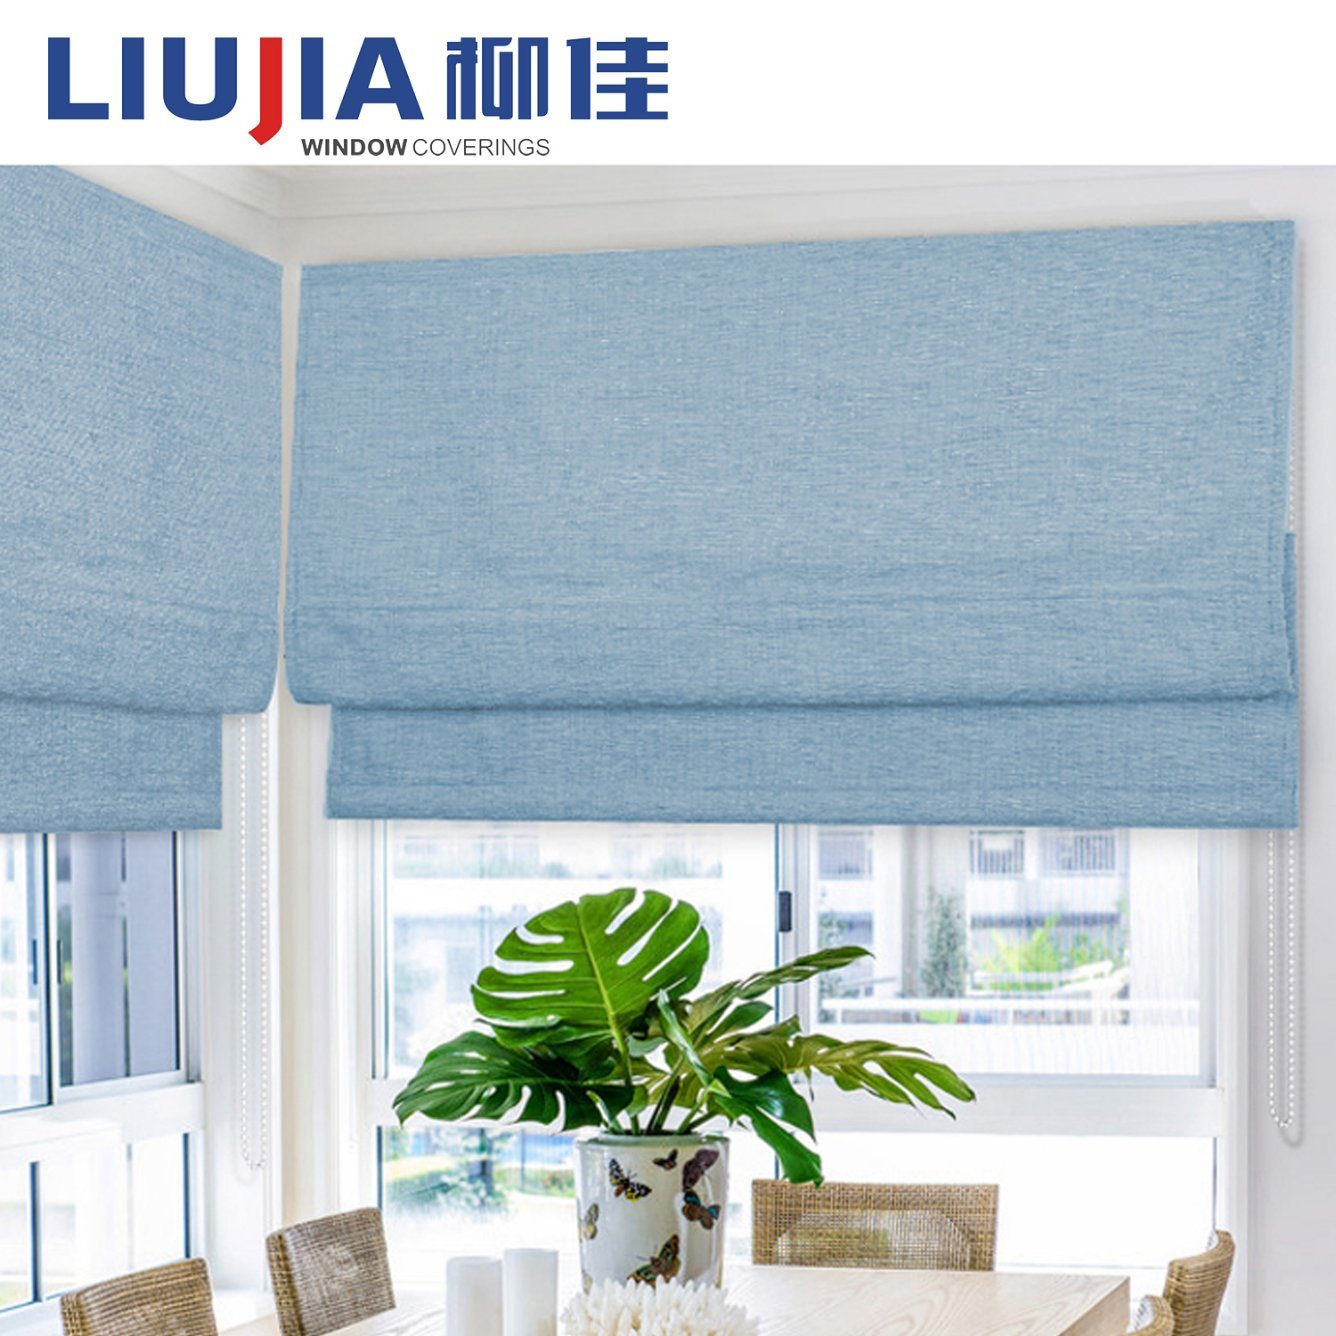 China Home Decoration Manual Chain Roman Roller Blinds - China Blind ...